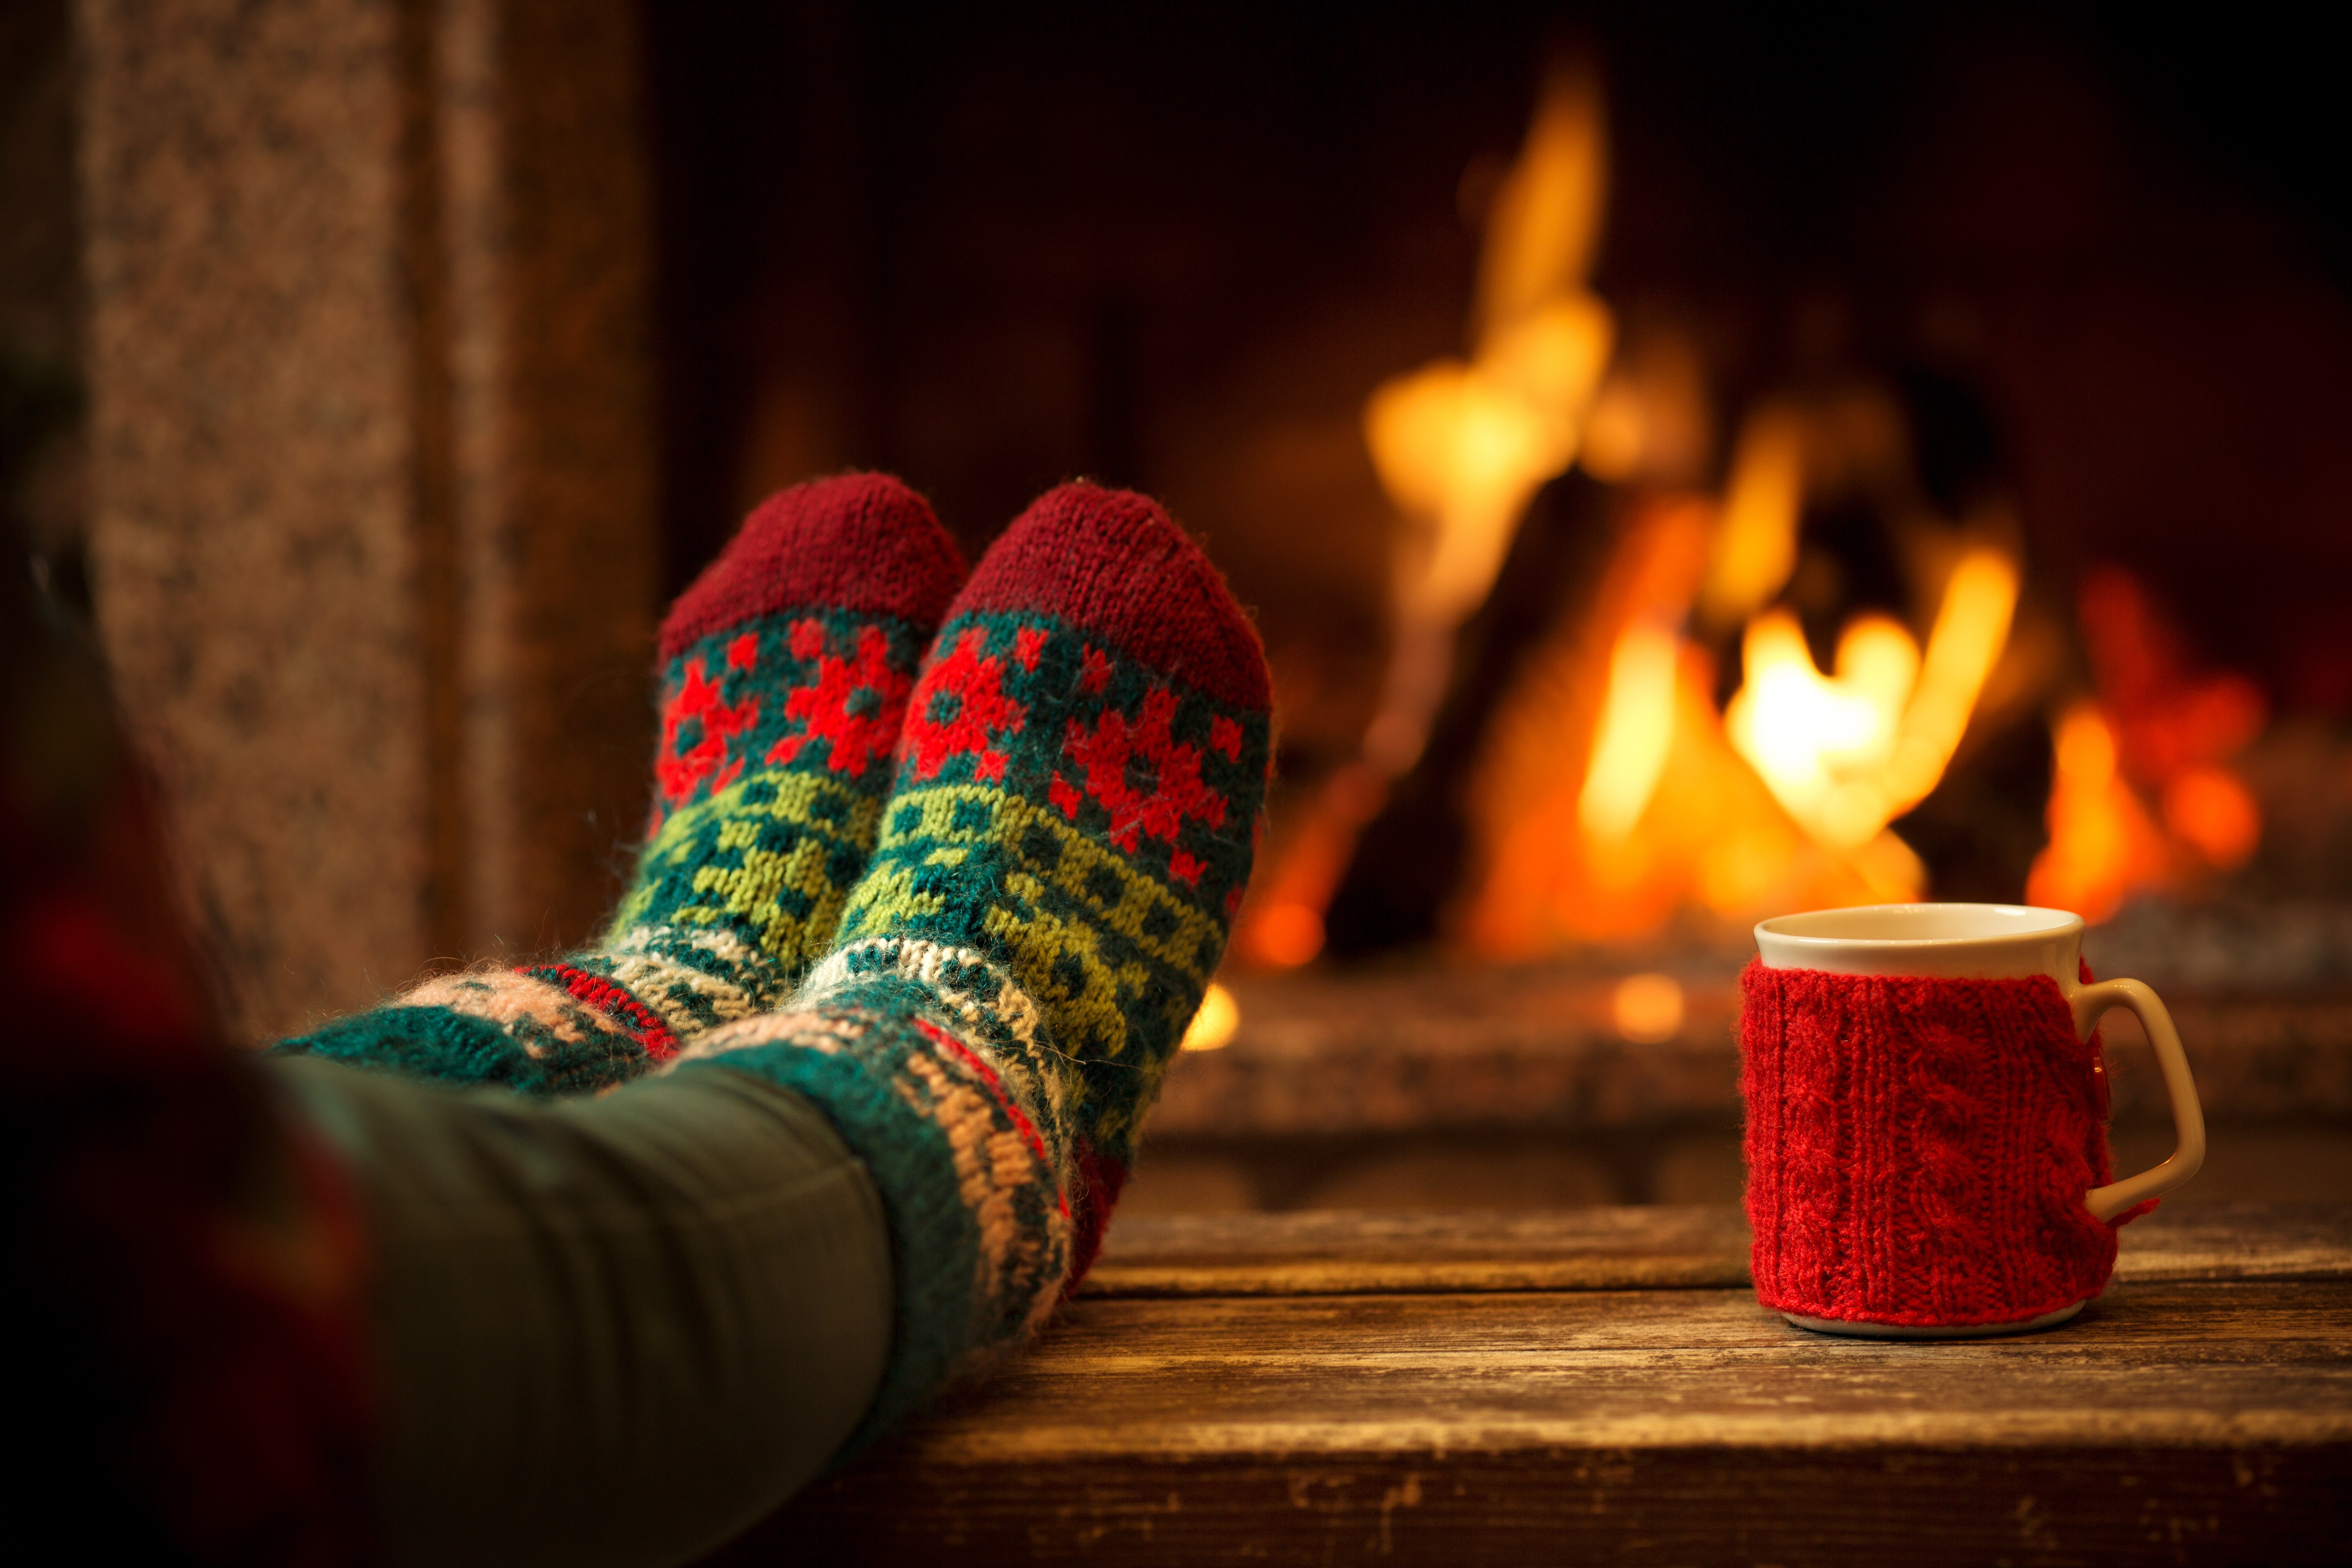 Relax and catch your breath for example in front of the fire place.